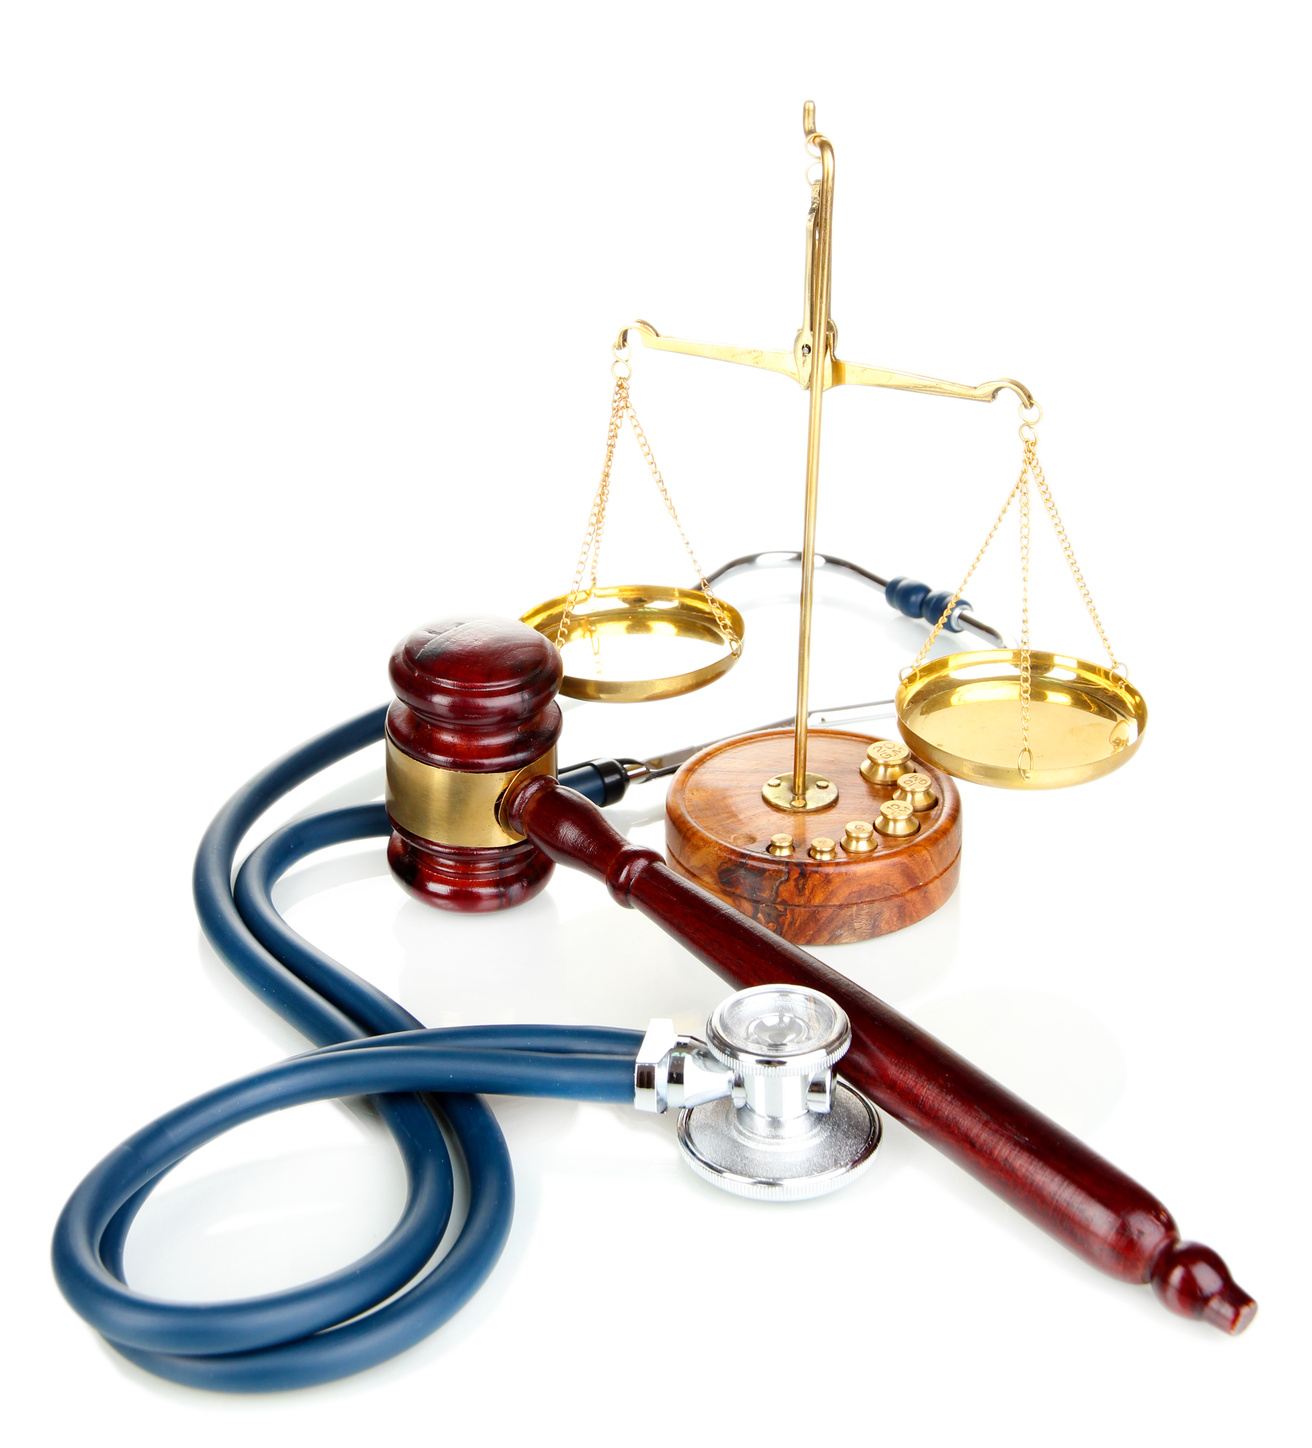 medical negligence 1-844-920-4242 | a doctor's negligence can result in serious injury or even death if you have been wronged, call us | toronto medical malpractice lawyers.